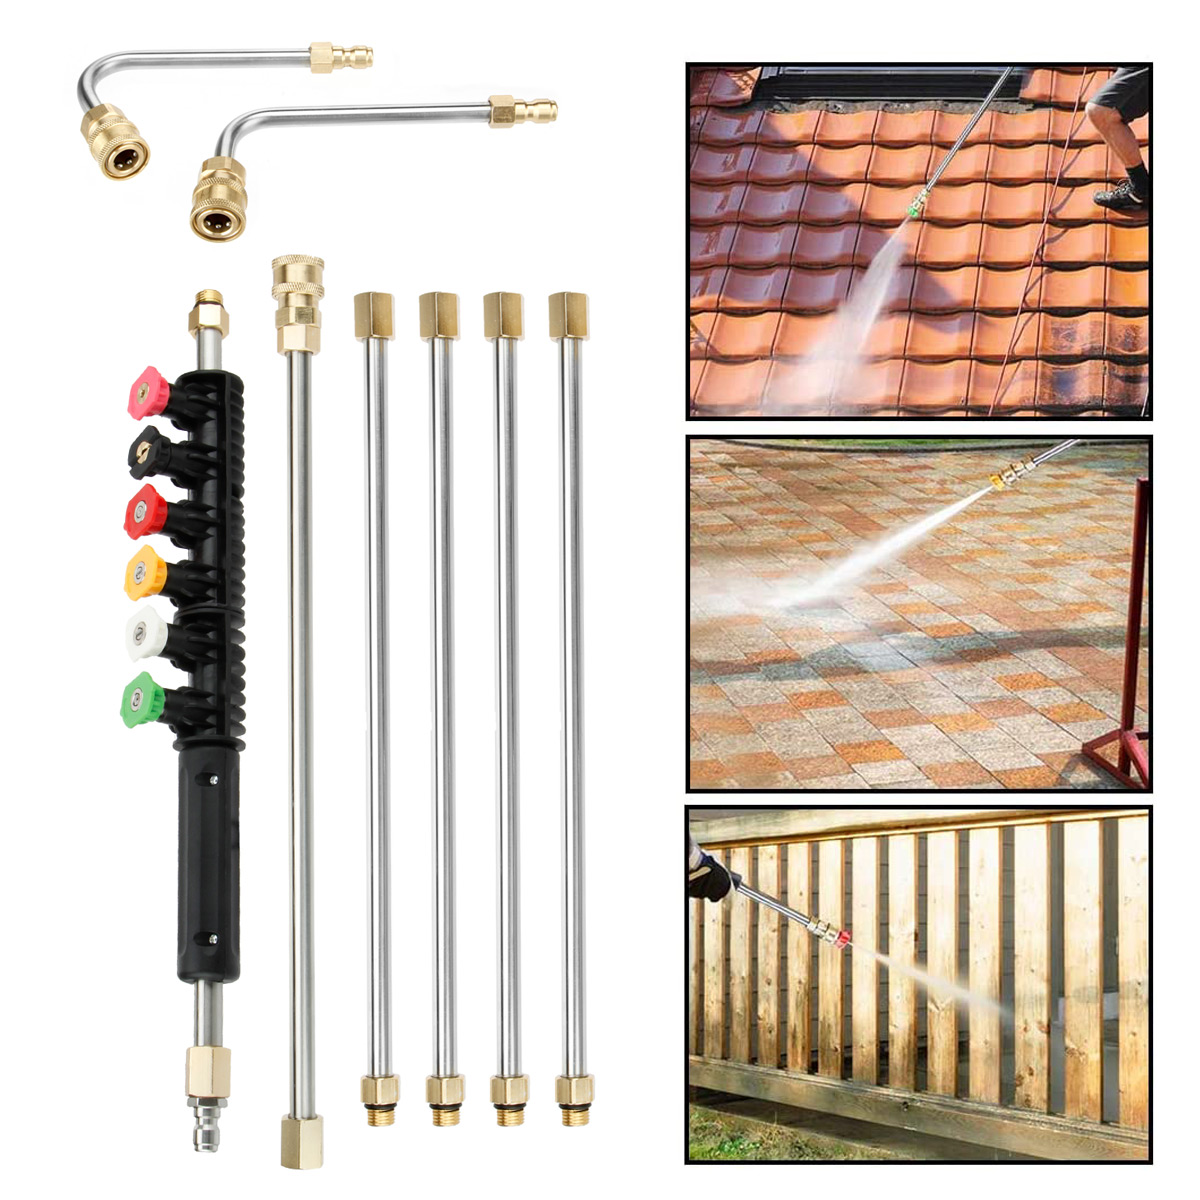 4000PSI High Pressure Washer Extension Wand Replace Turbo Nozzle Spray Tips